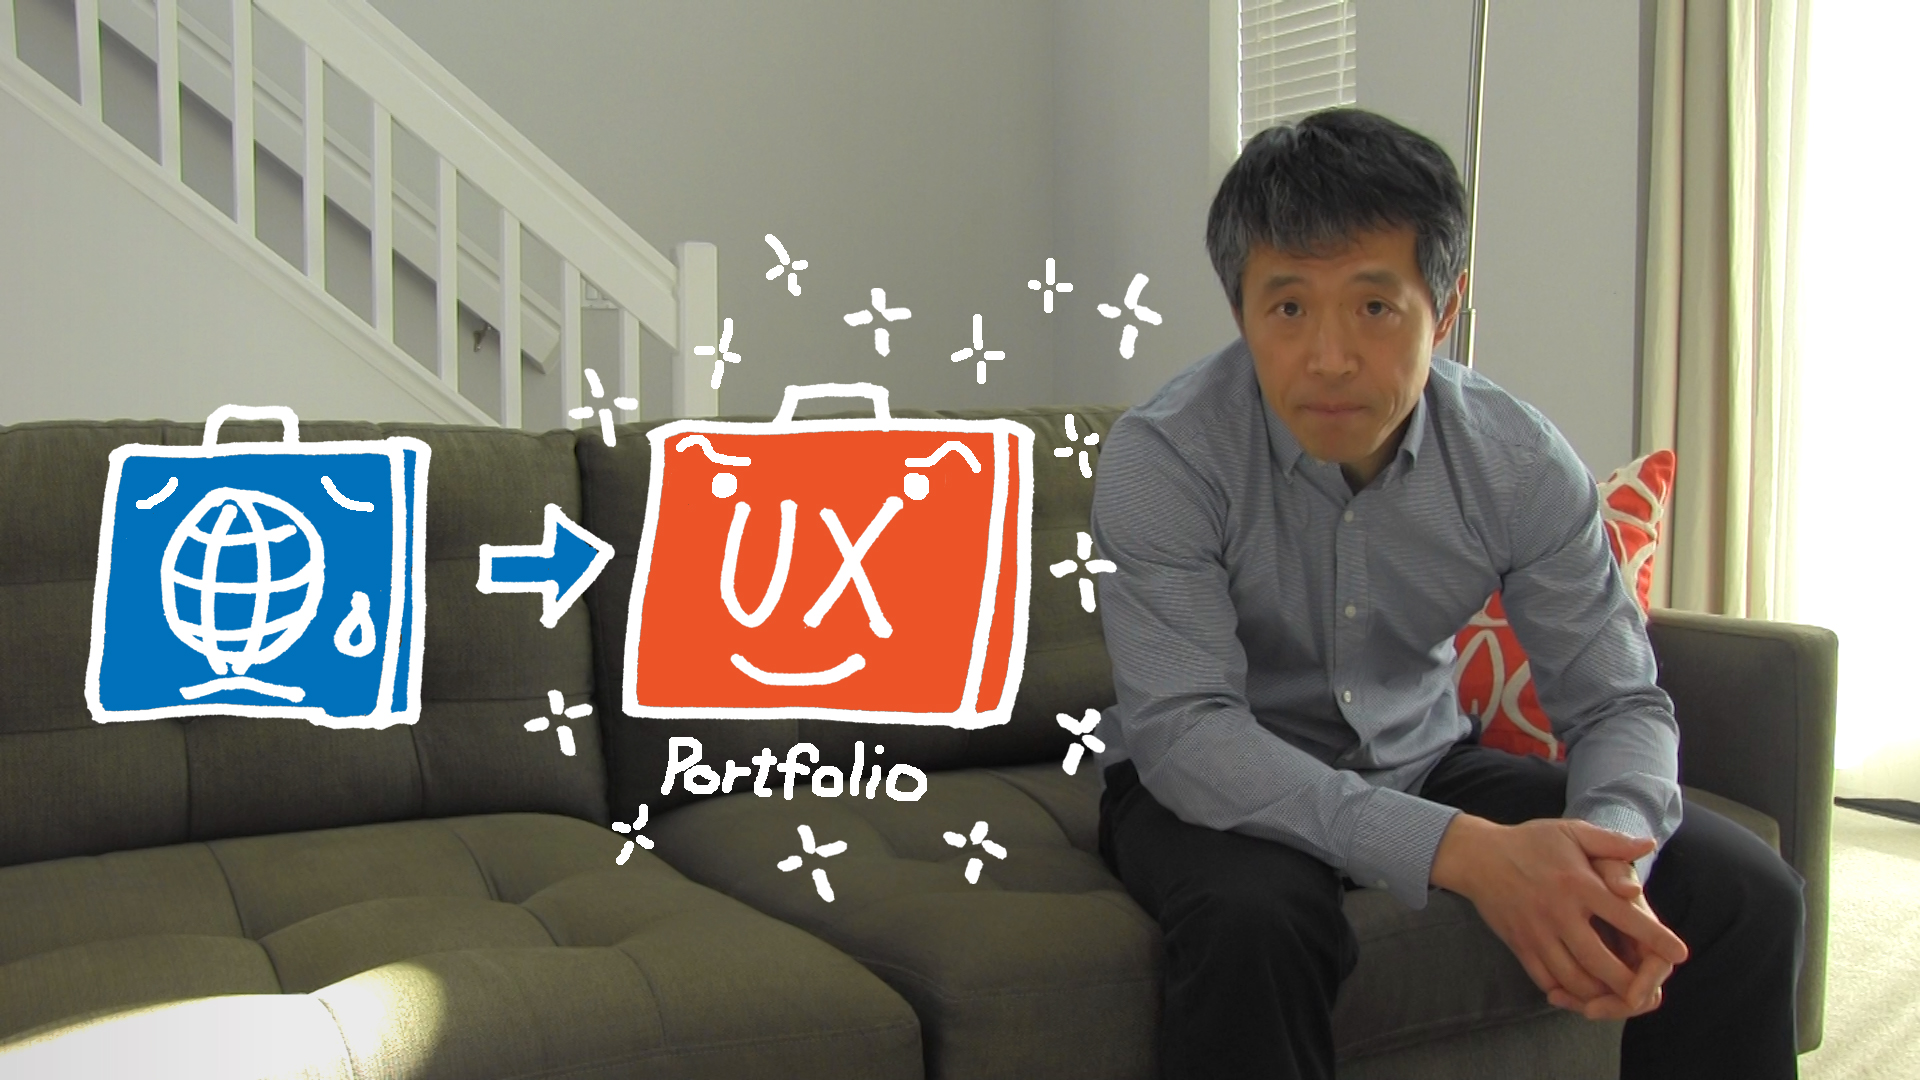 Illustration of converting web designer's portfolio into UX portfolio